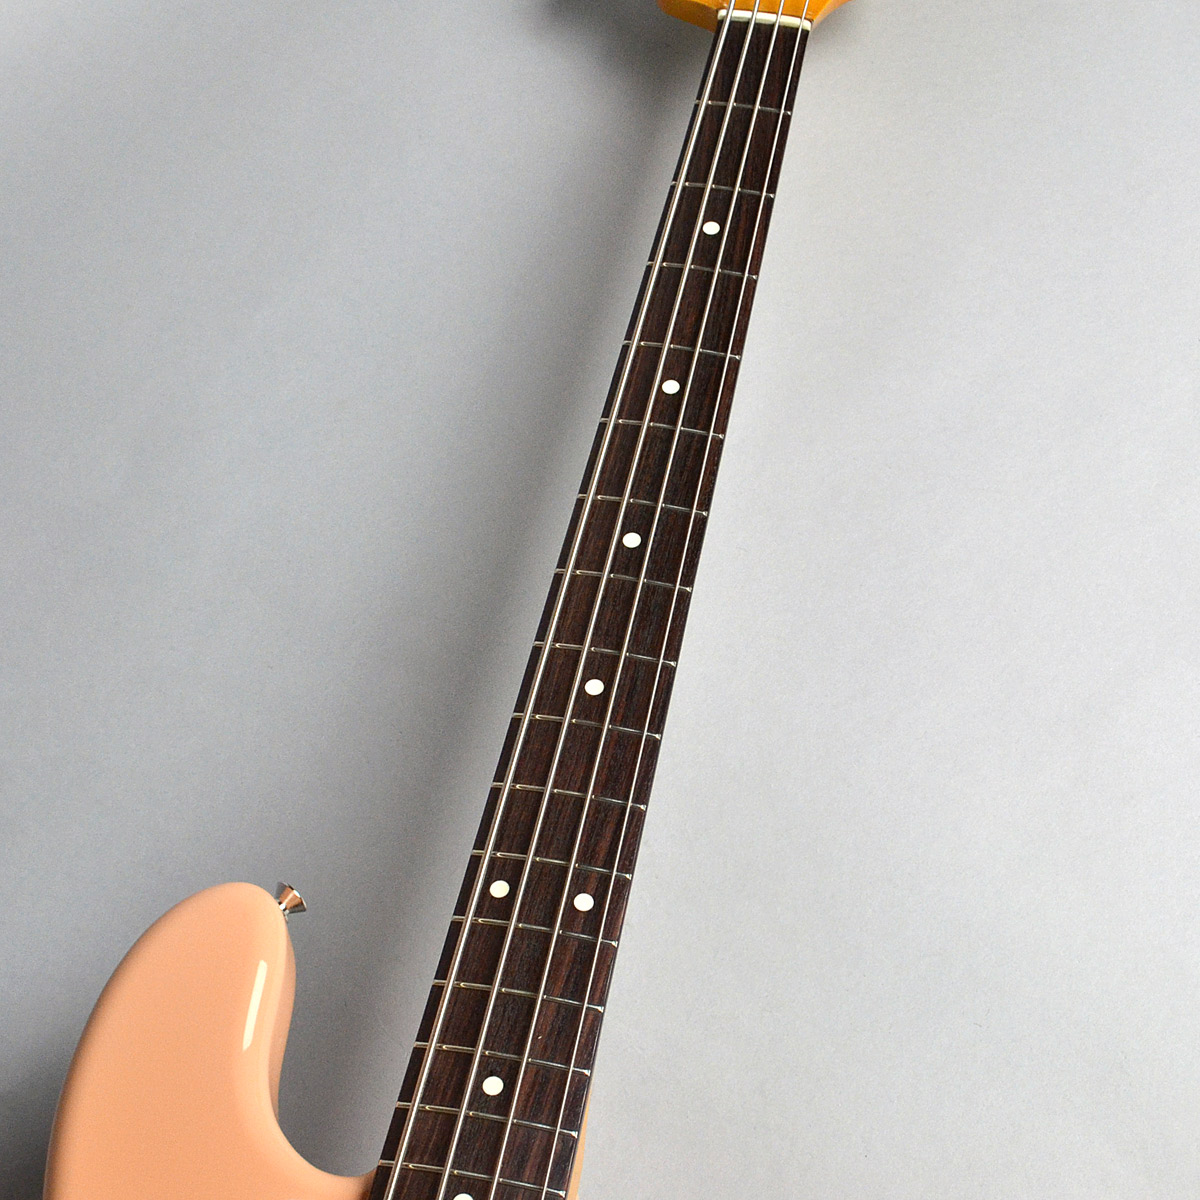 Made in Japan Traditional 60s JazzBassの指板画像